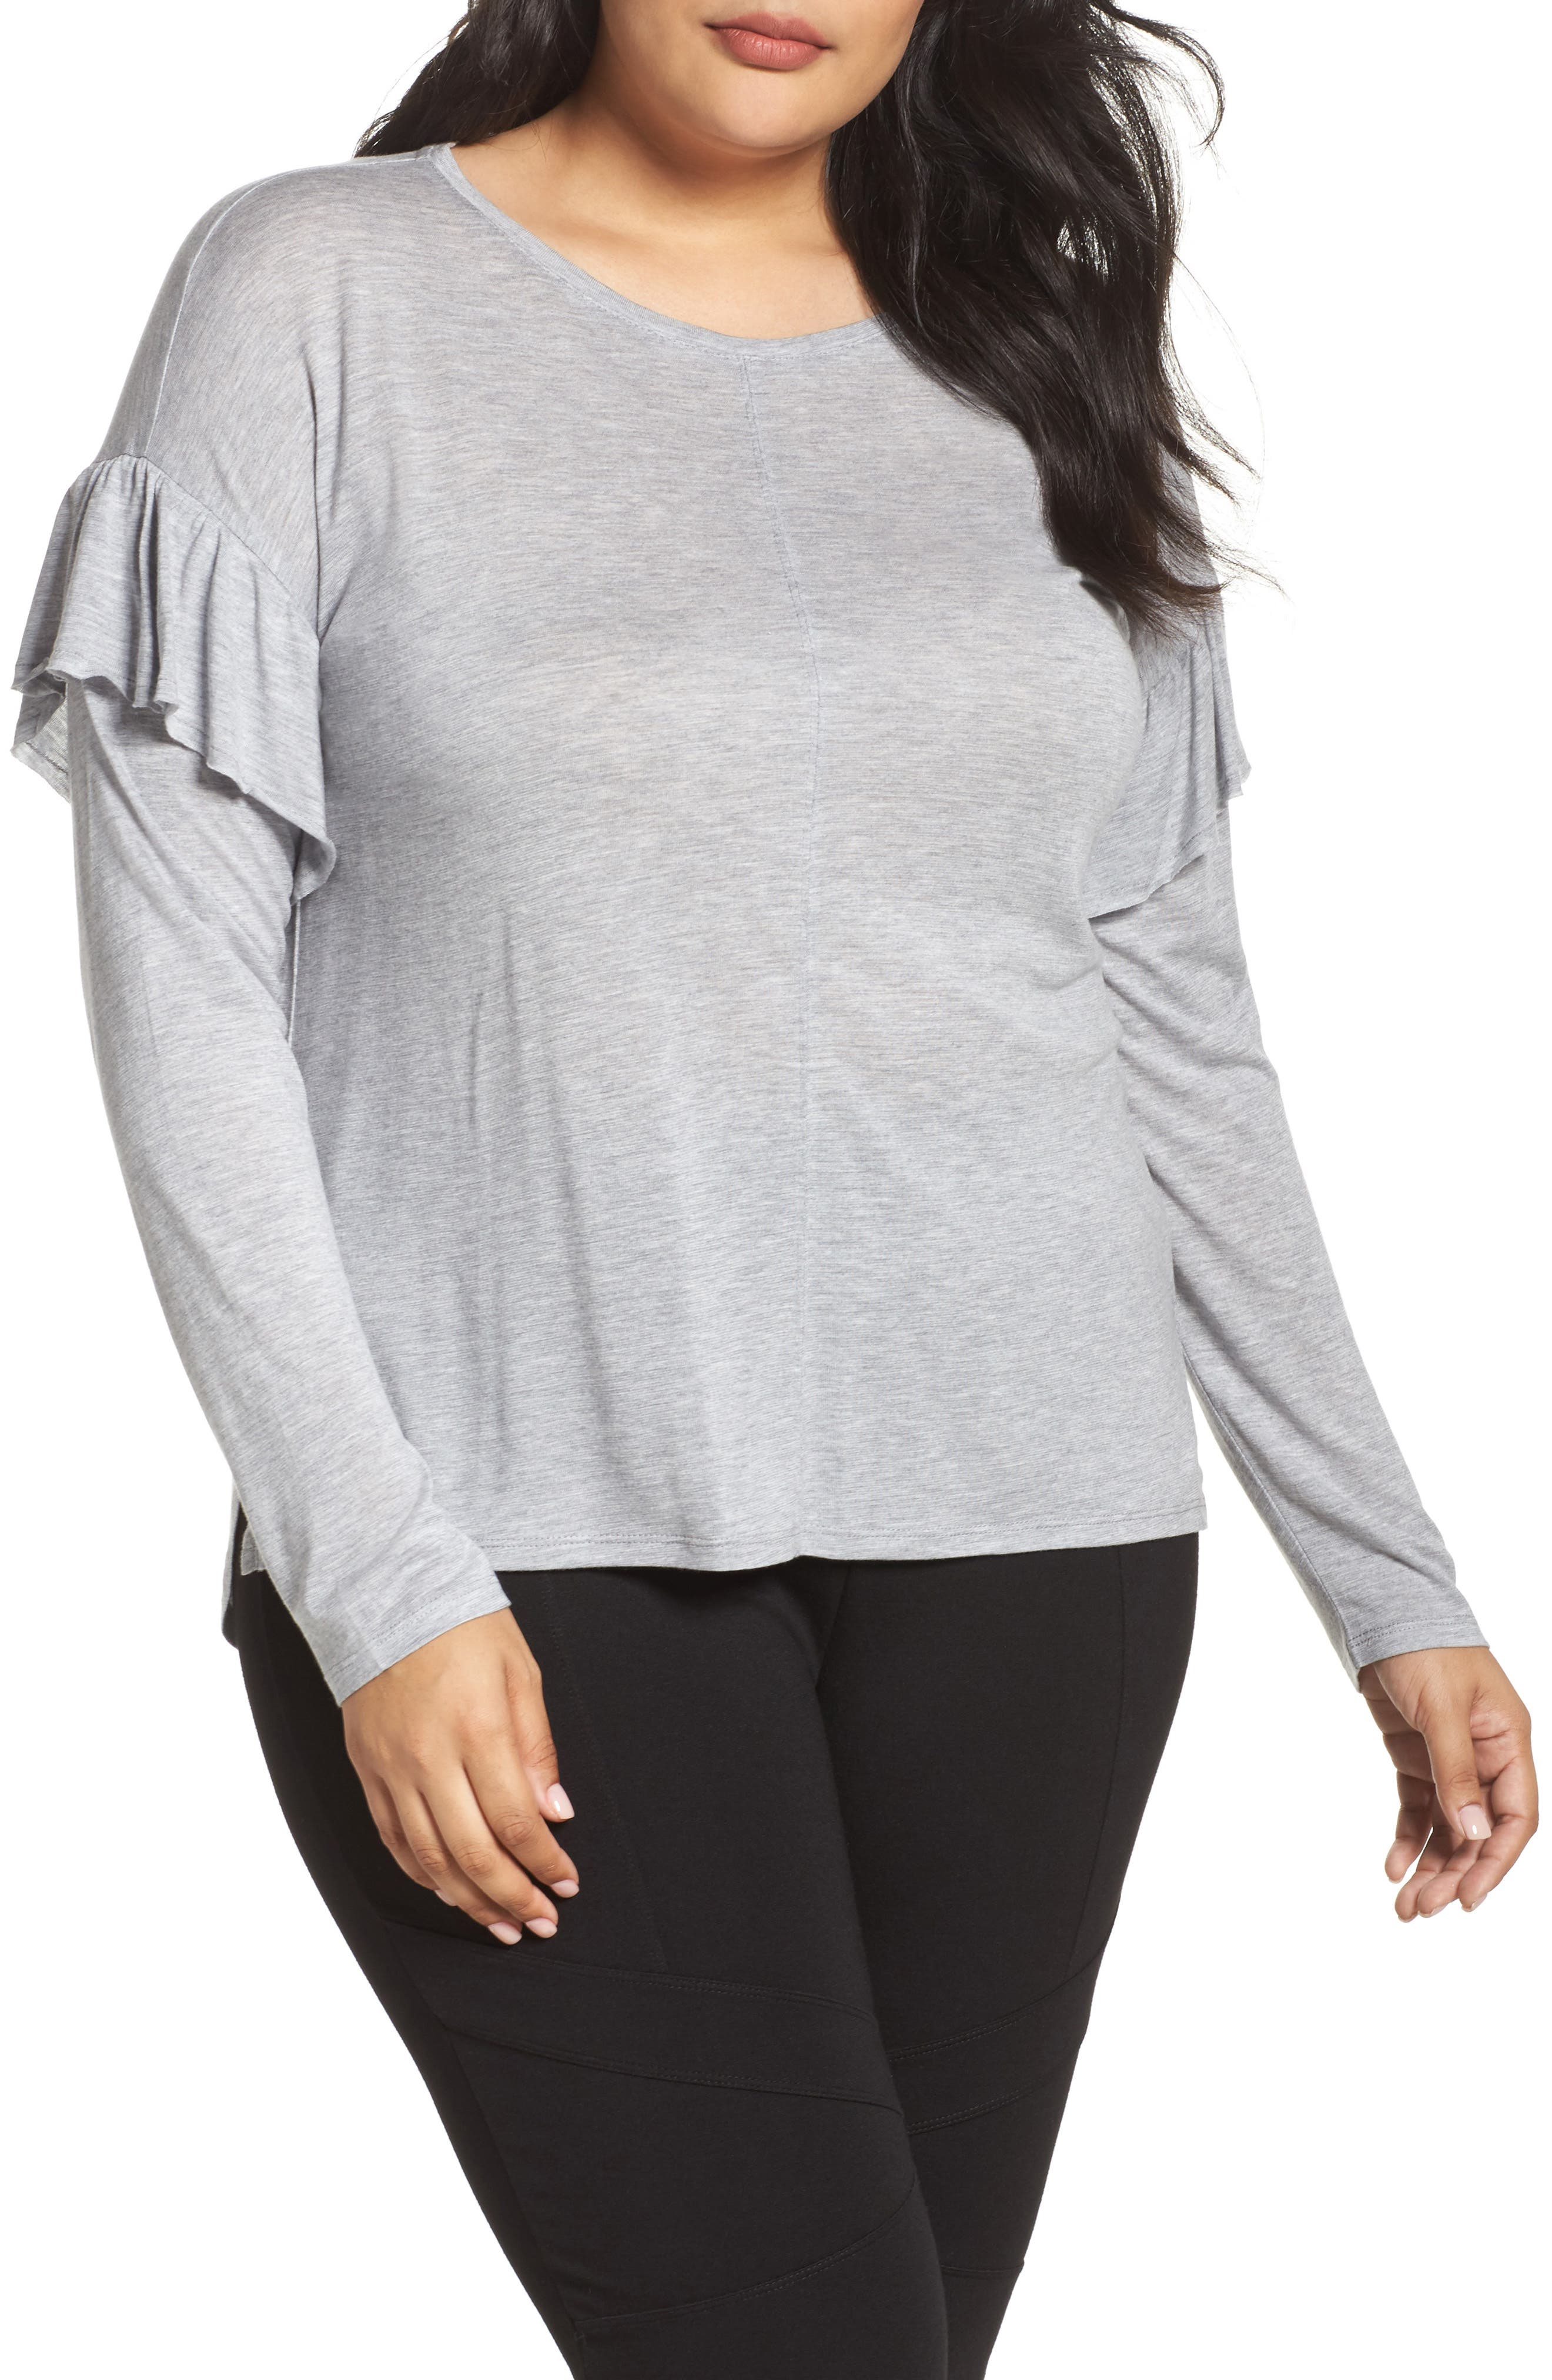 Main Image - Two by Vince Camuto Long Sleeve Ruffle Shoulder Top (Plus Size)